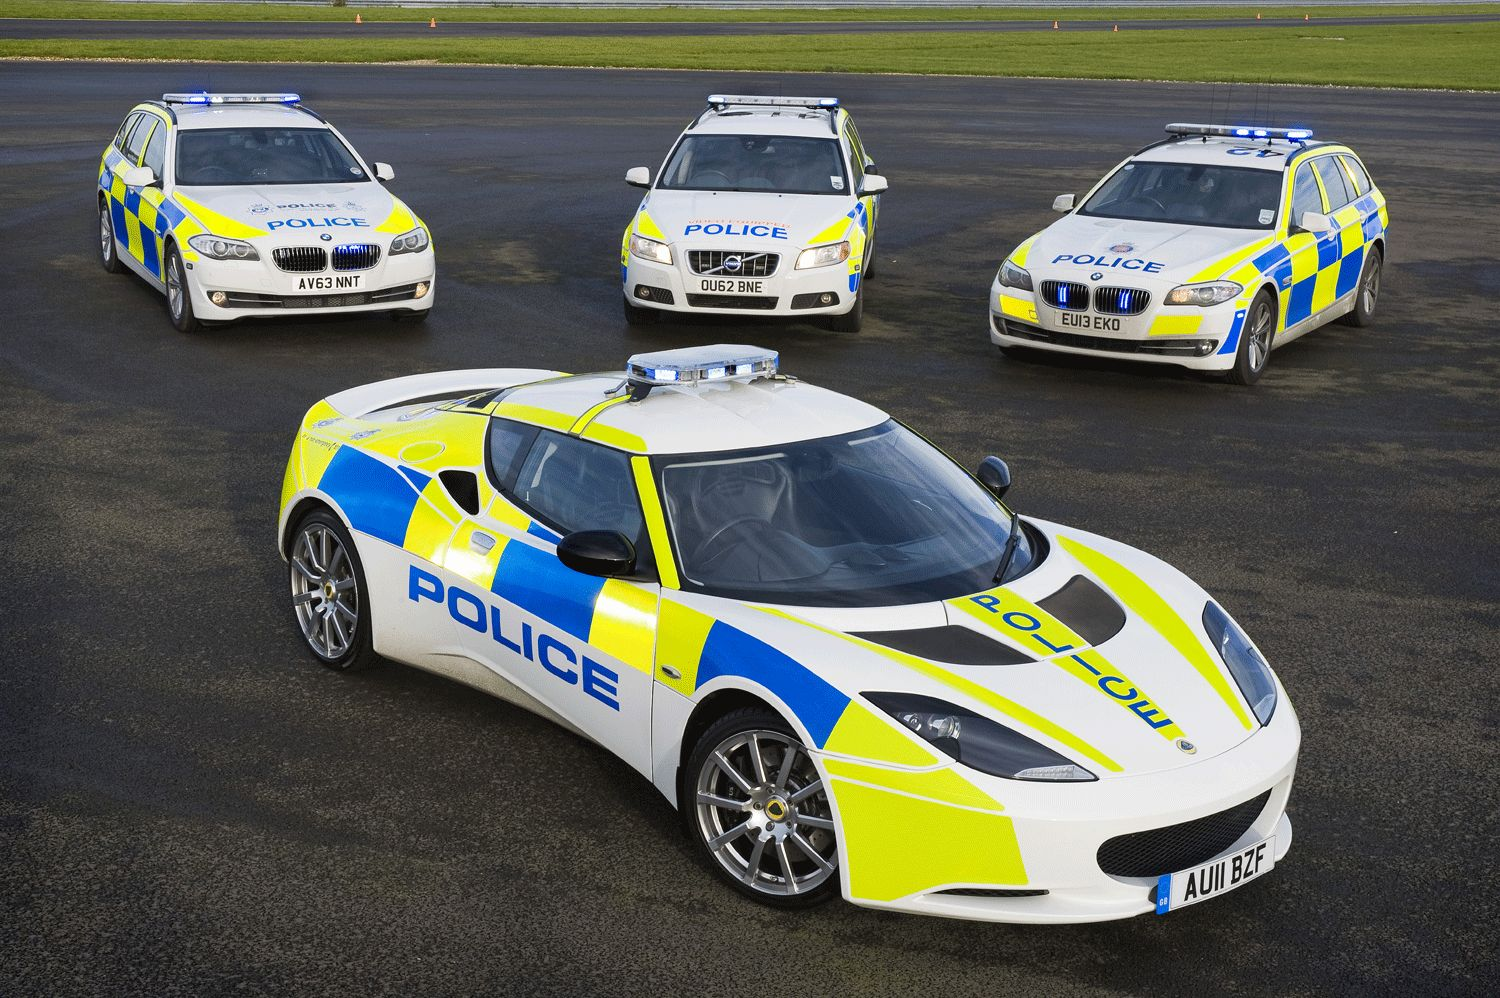 The best police cars in the world